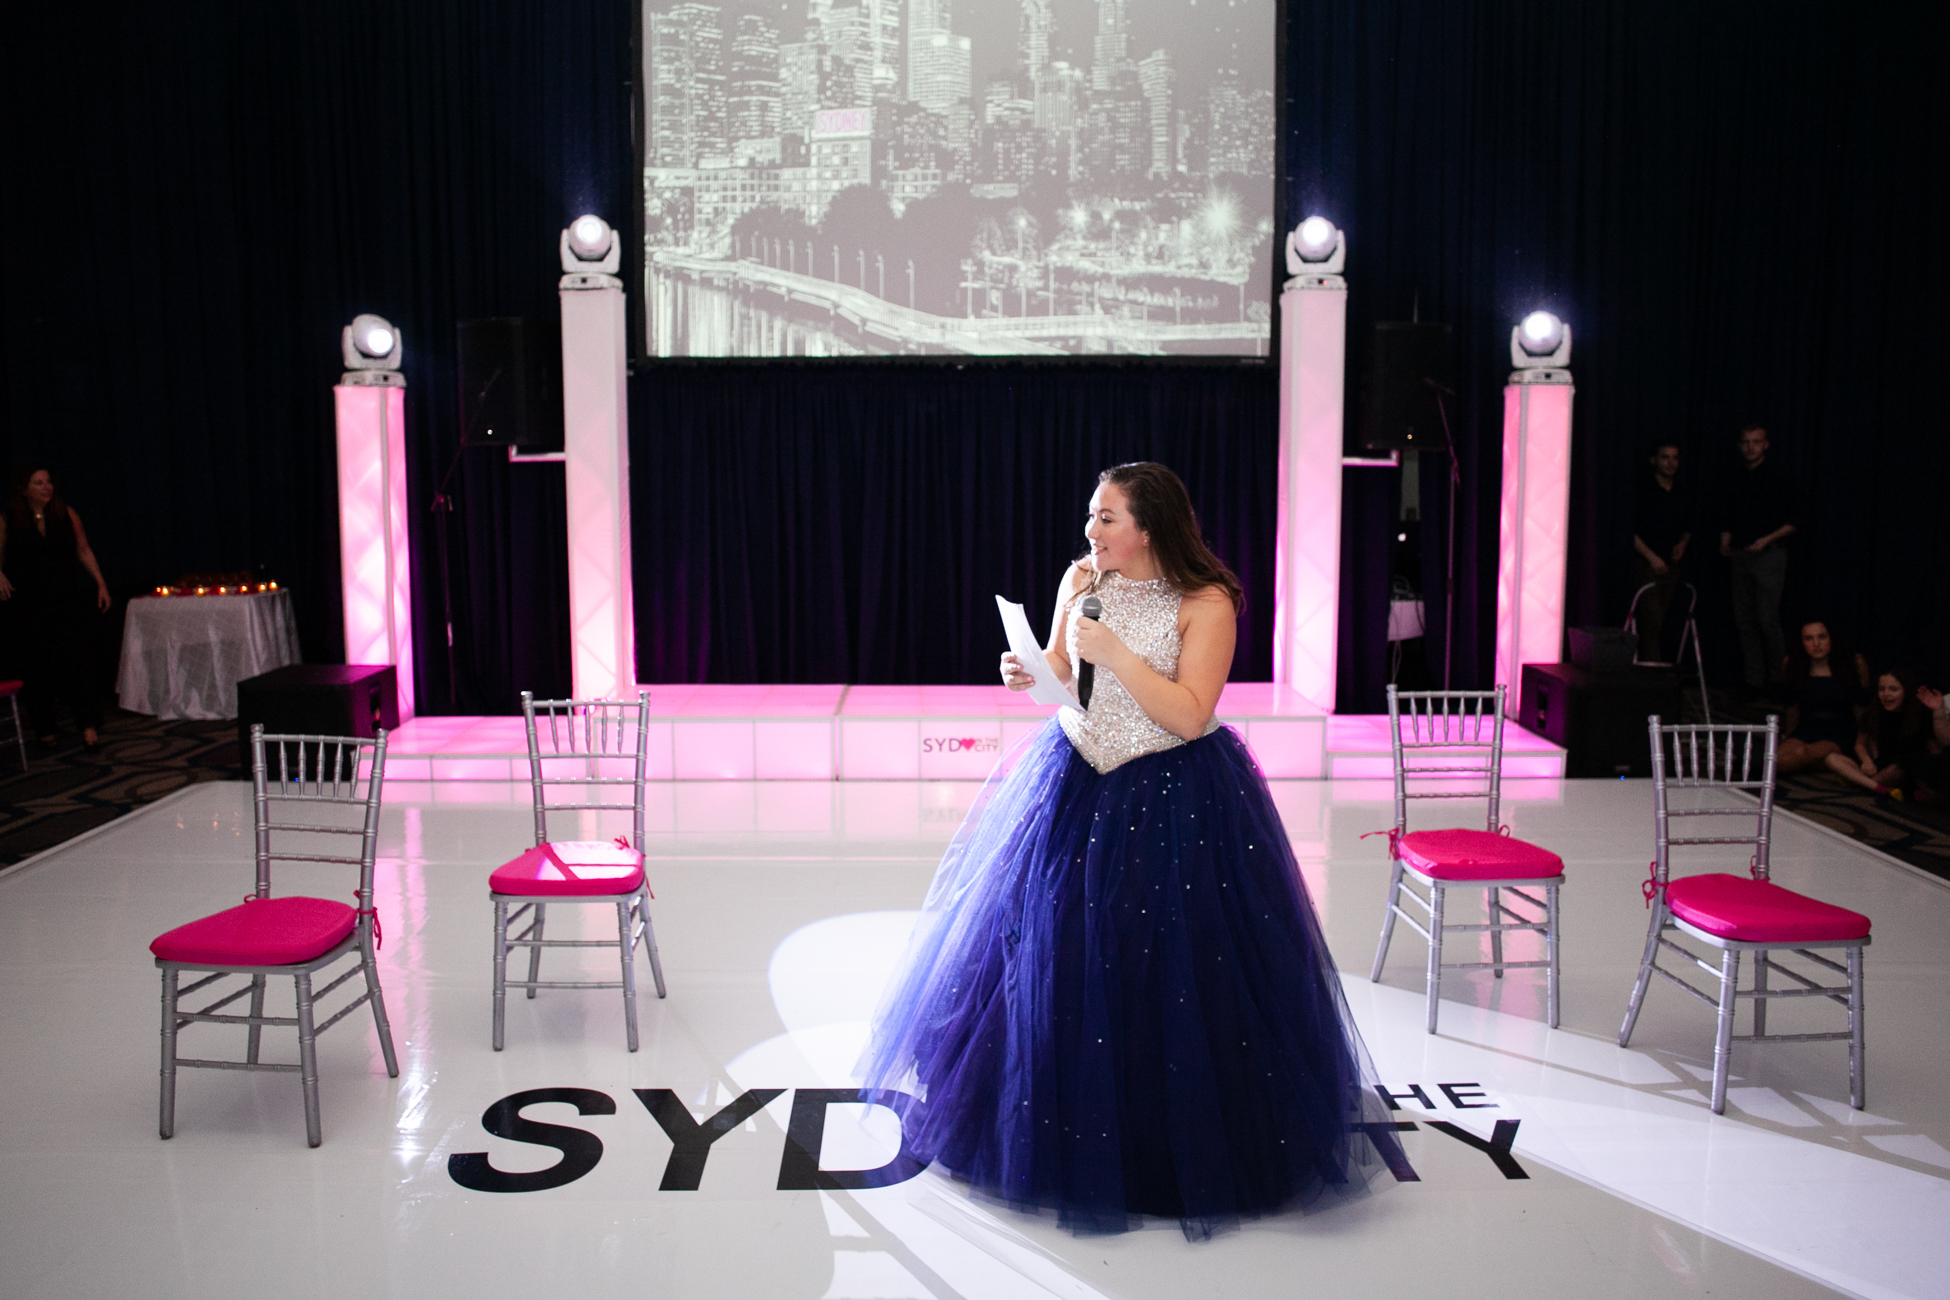 Sydney's Bat Mitzvah at Sheraton Society Hill by Avi Loren Fox LLC - Sneak Peak-37.jpg